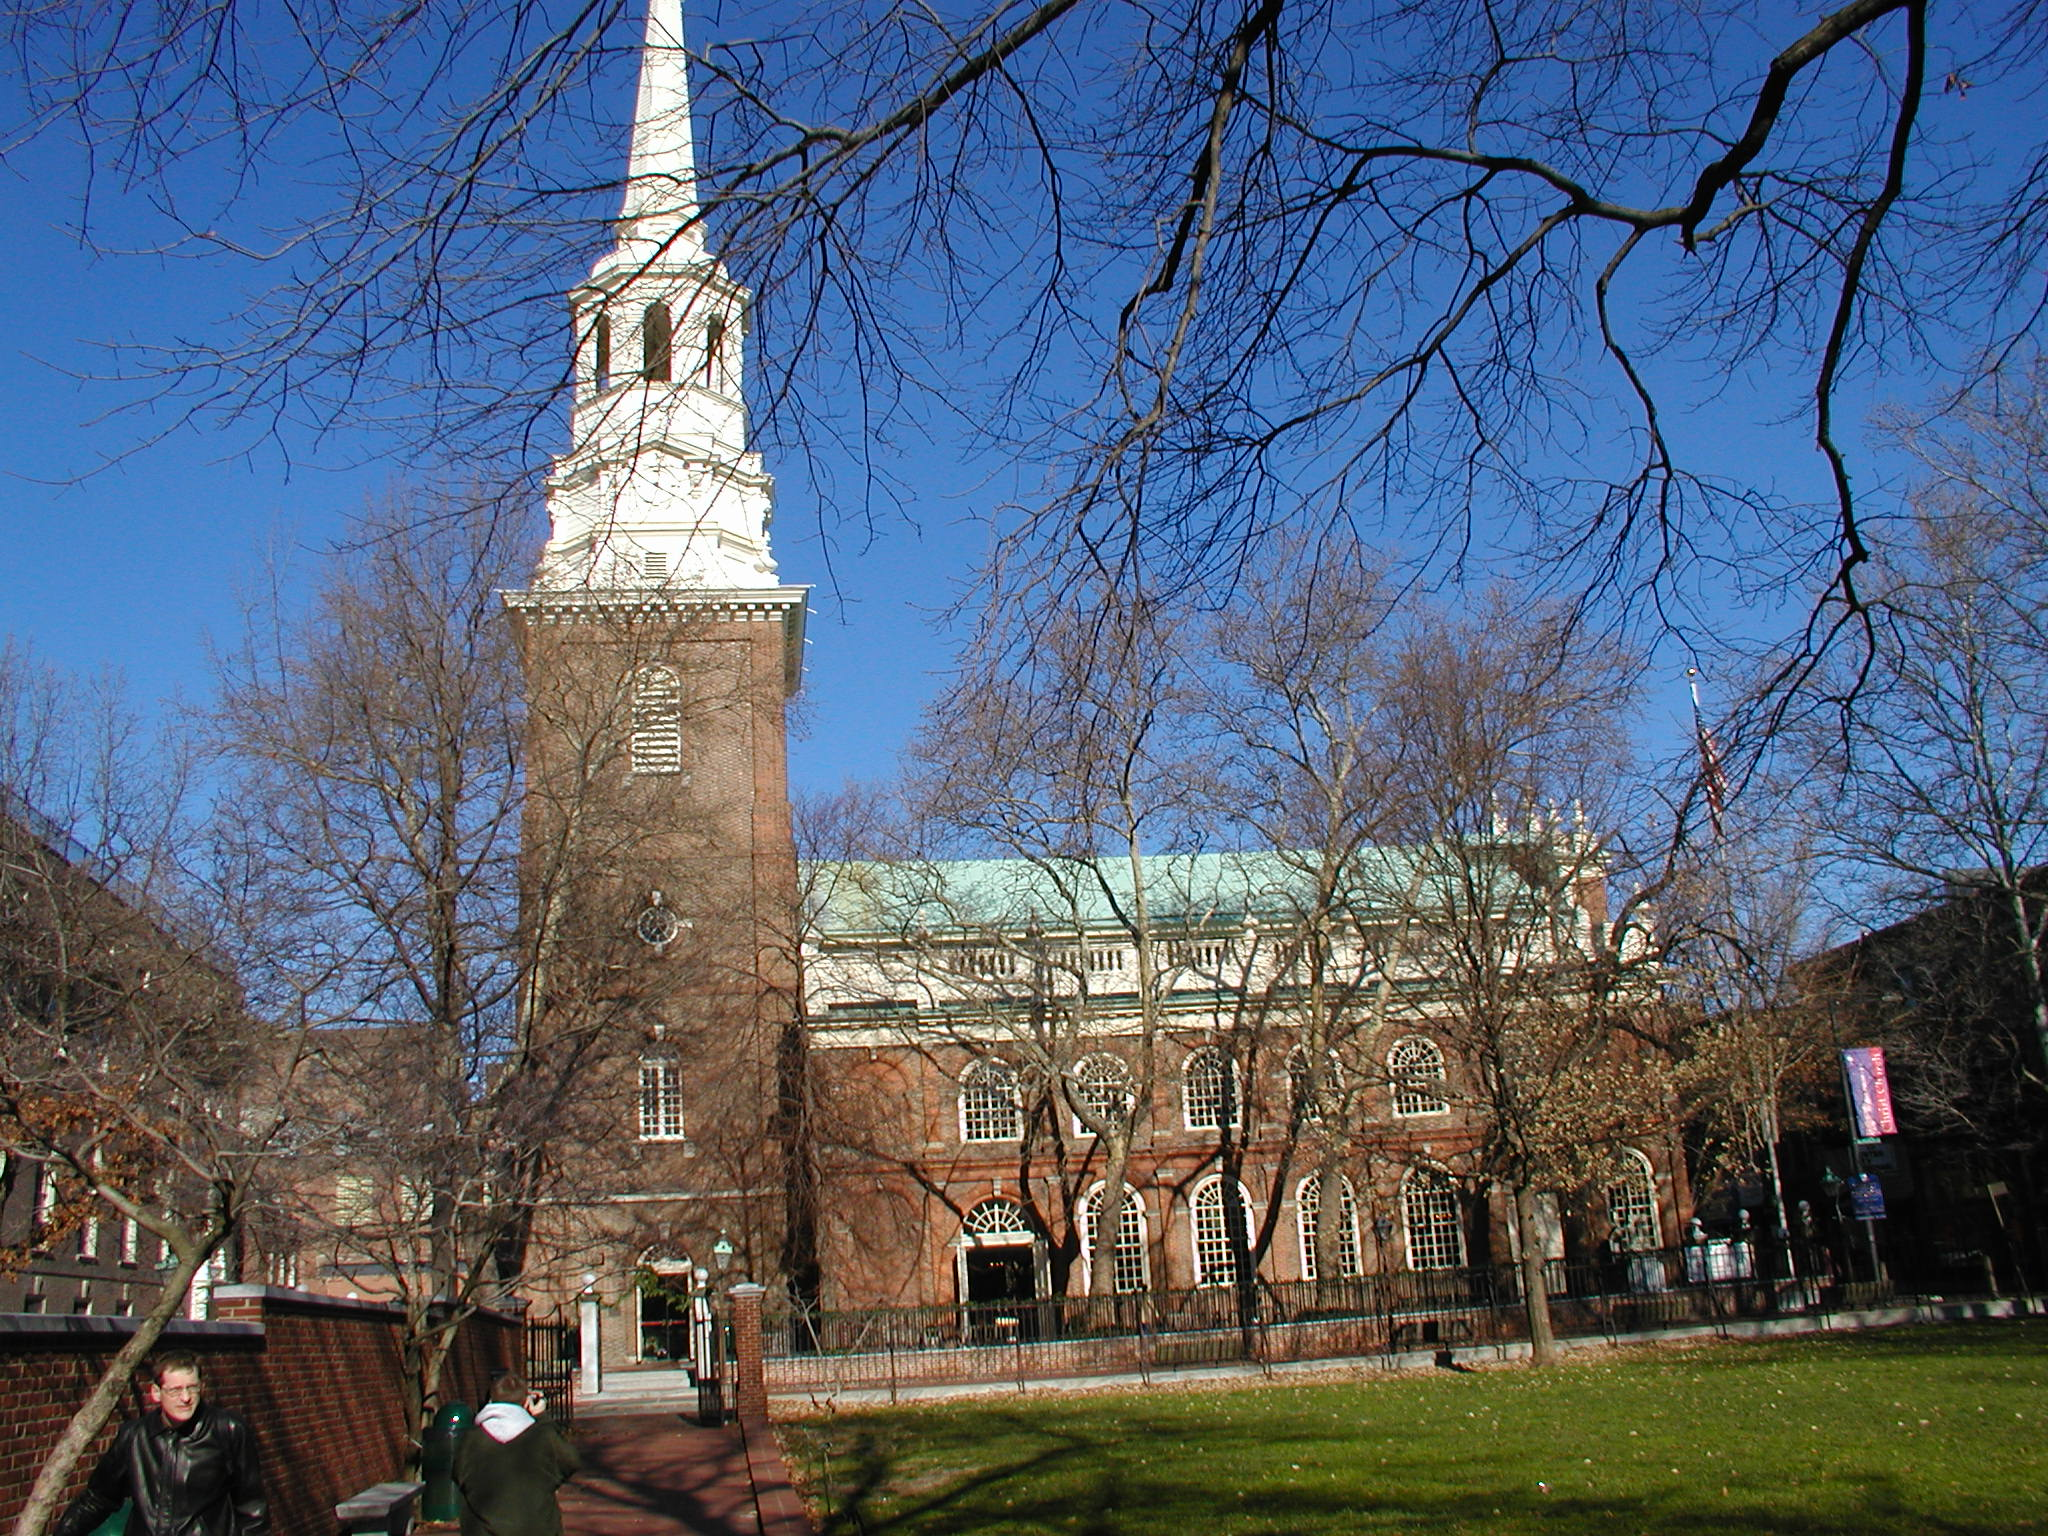 A view of Christ Church and its iconic spire which was the tallest structure in North America from 1754-1810.